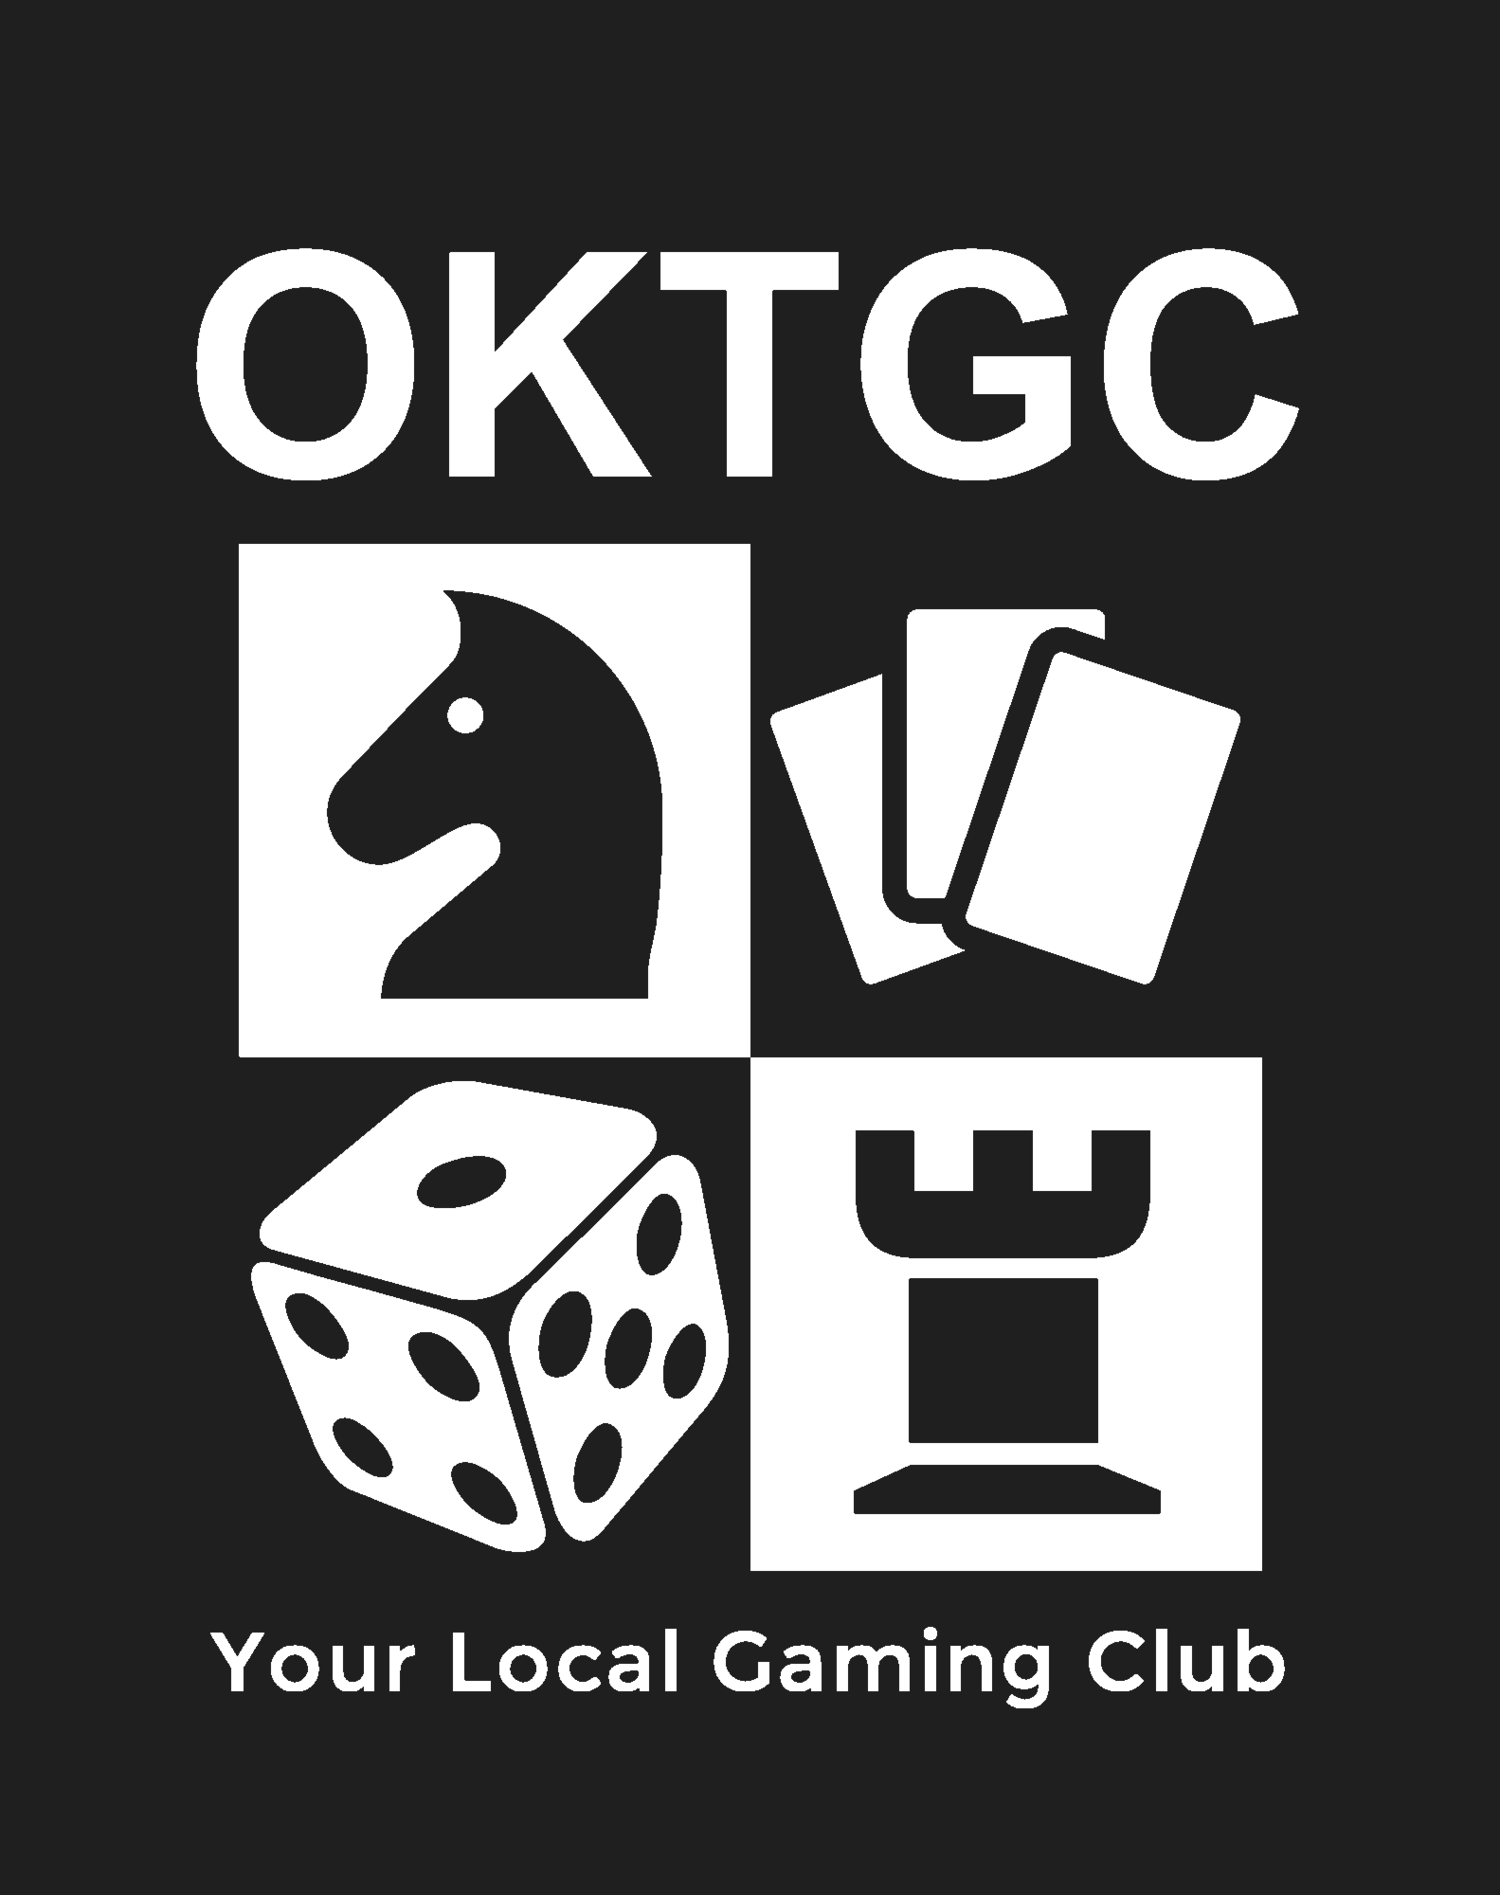 The Oklahoma Tabletop Gaming Club